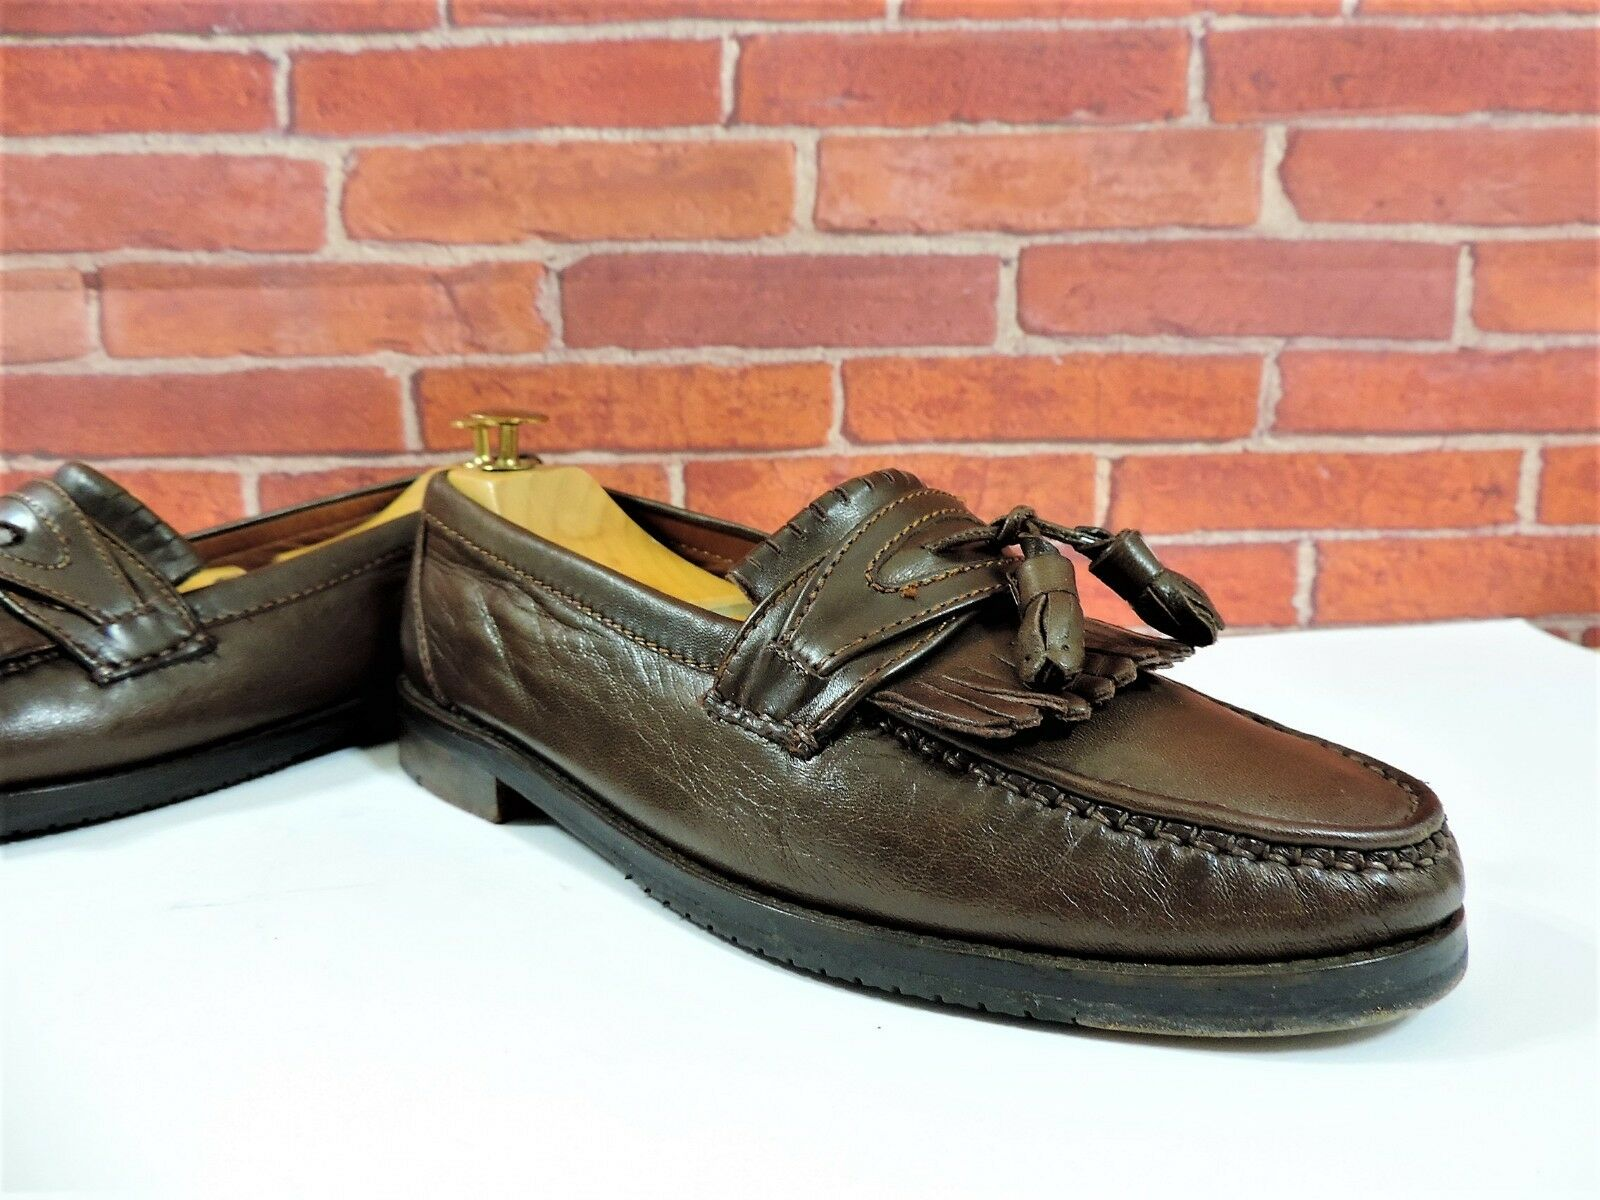 Bally Tan Fringed Tassel Penny Loafers UK 7.5 US US US 8.5 EU 41.5 V Minor Use db1ecc